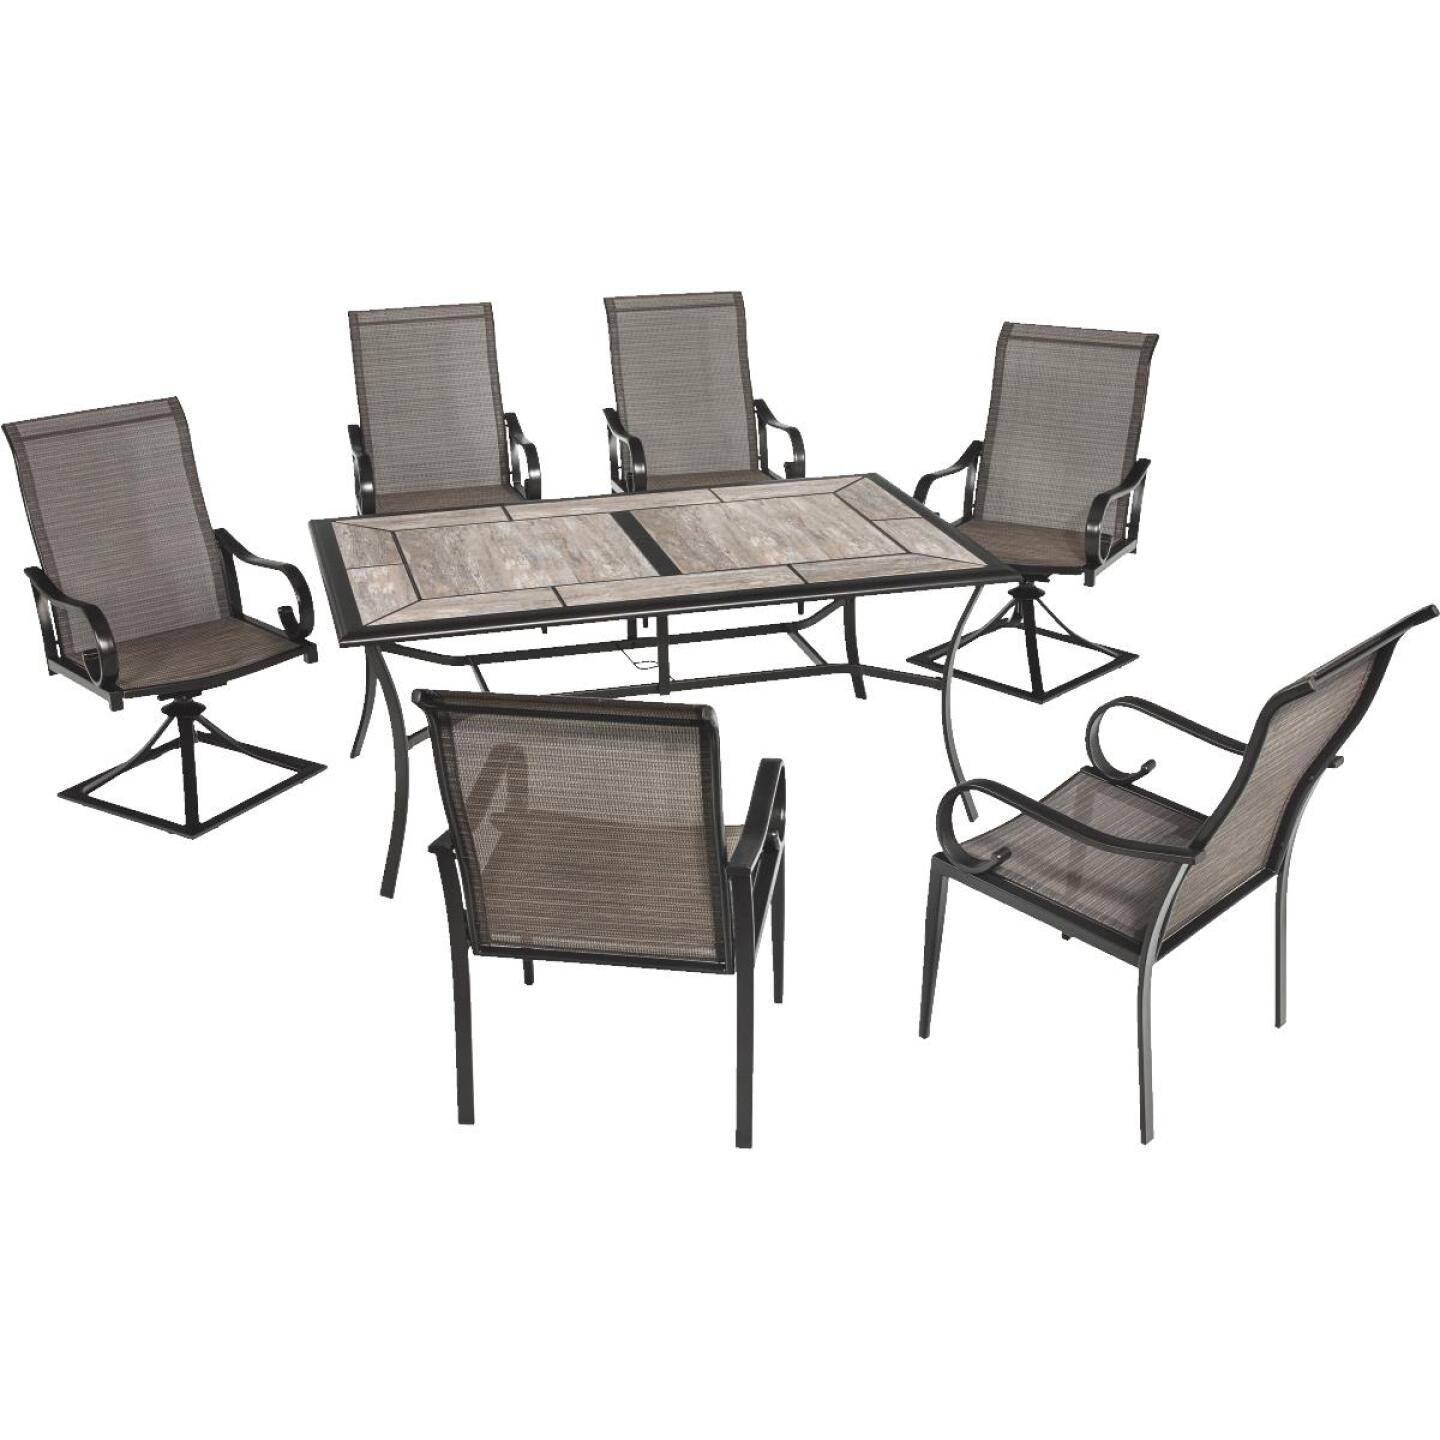 Outdoor Expressions Berkshire 7-Piece Dining Set Image 246